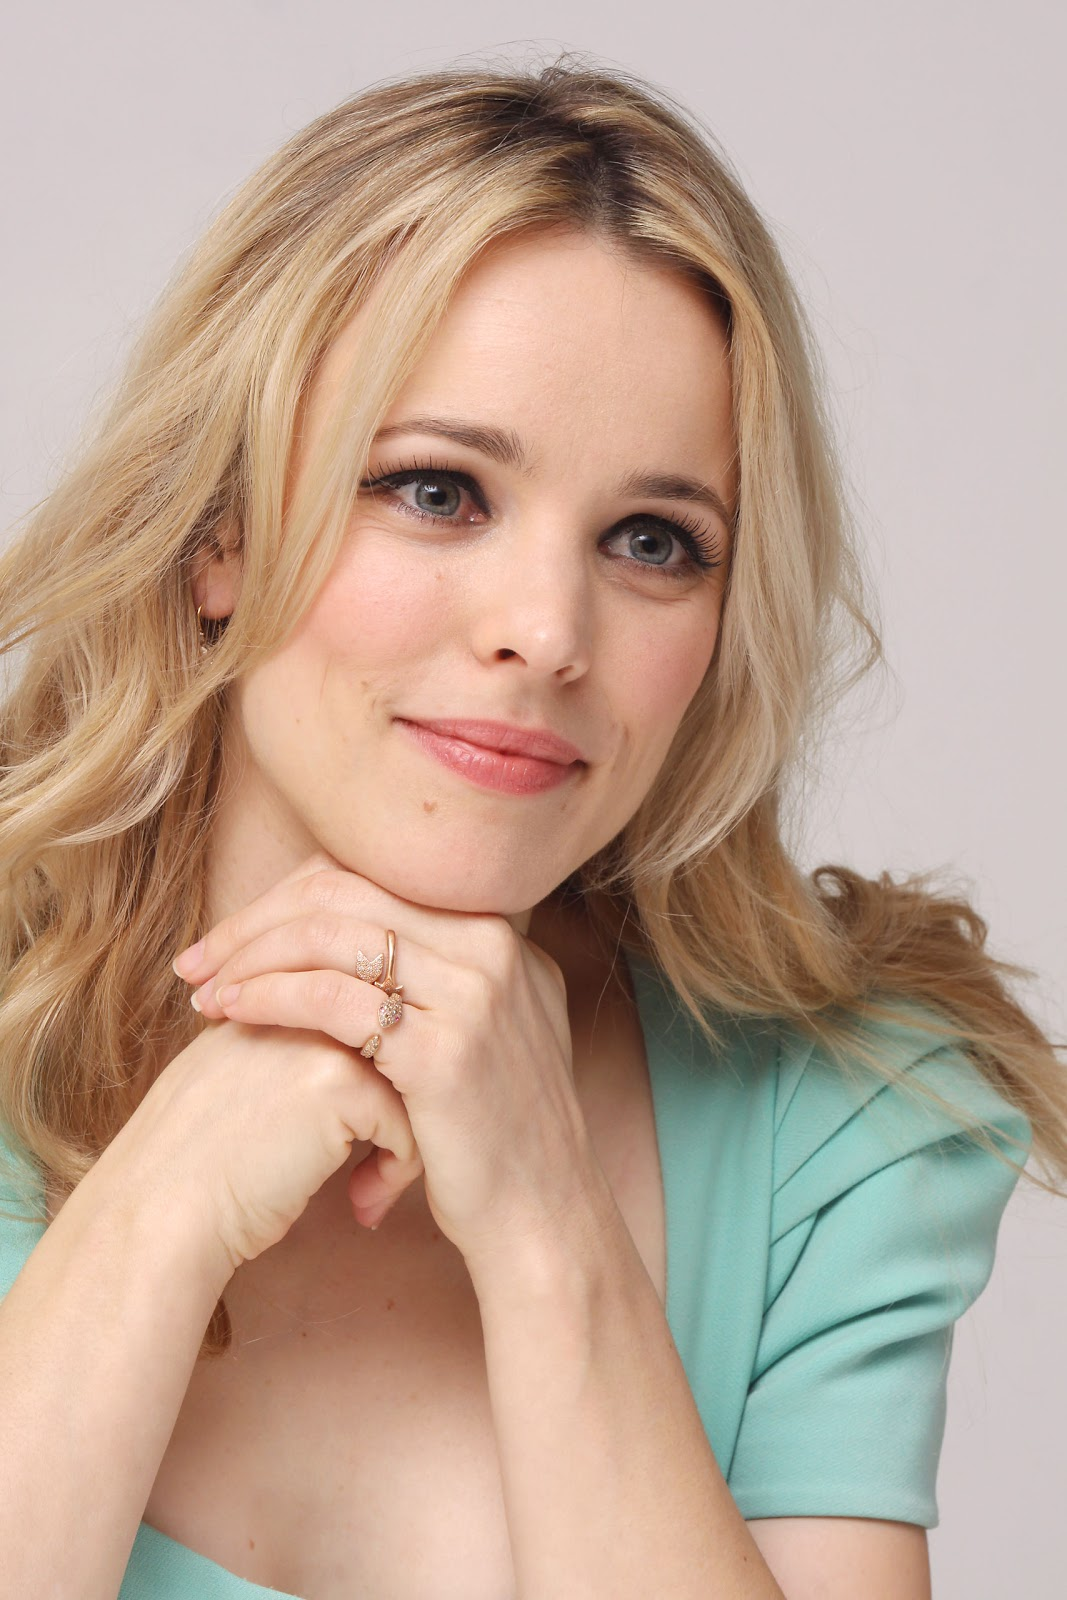 http://2.bp.blogspot.com/-6Z0FFKQ_TN4/T3X6wO06DZI/AAAAAAAABP0/xryVF6yP1YU/s1600/Rachel_McAdams_The_Vow_press_conference_portraits_by_Munawar_Hosain_14.jpg